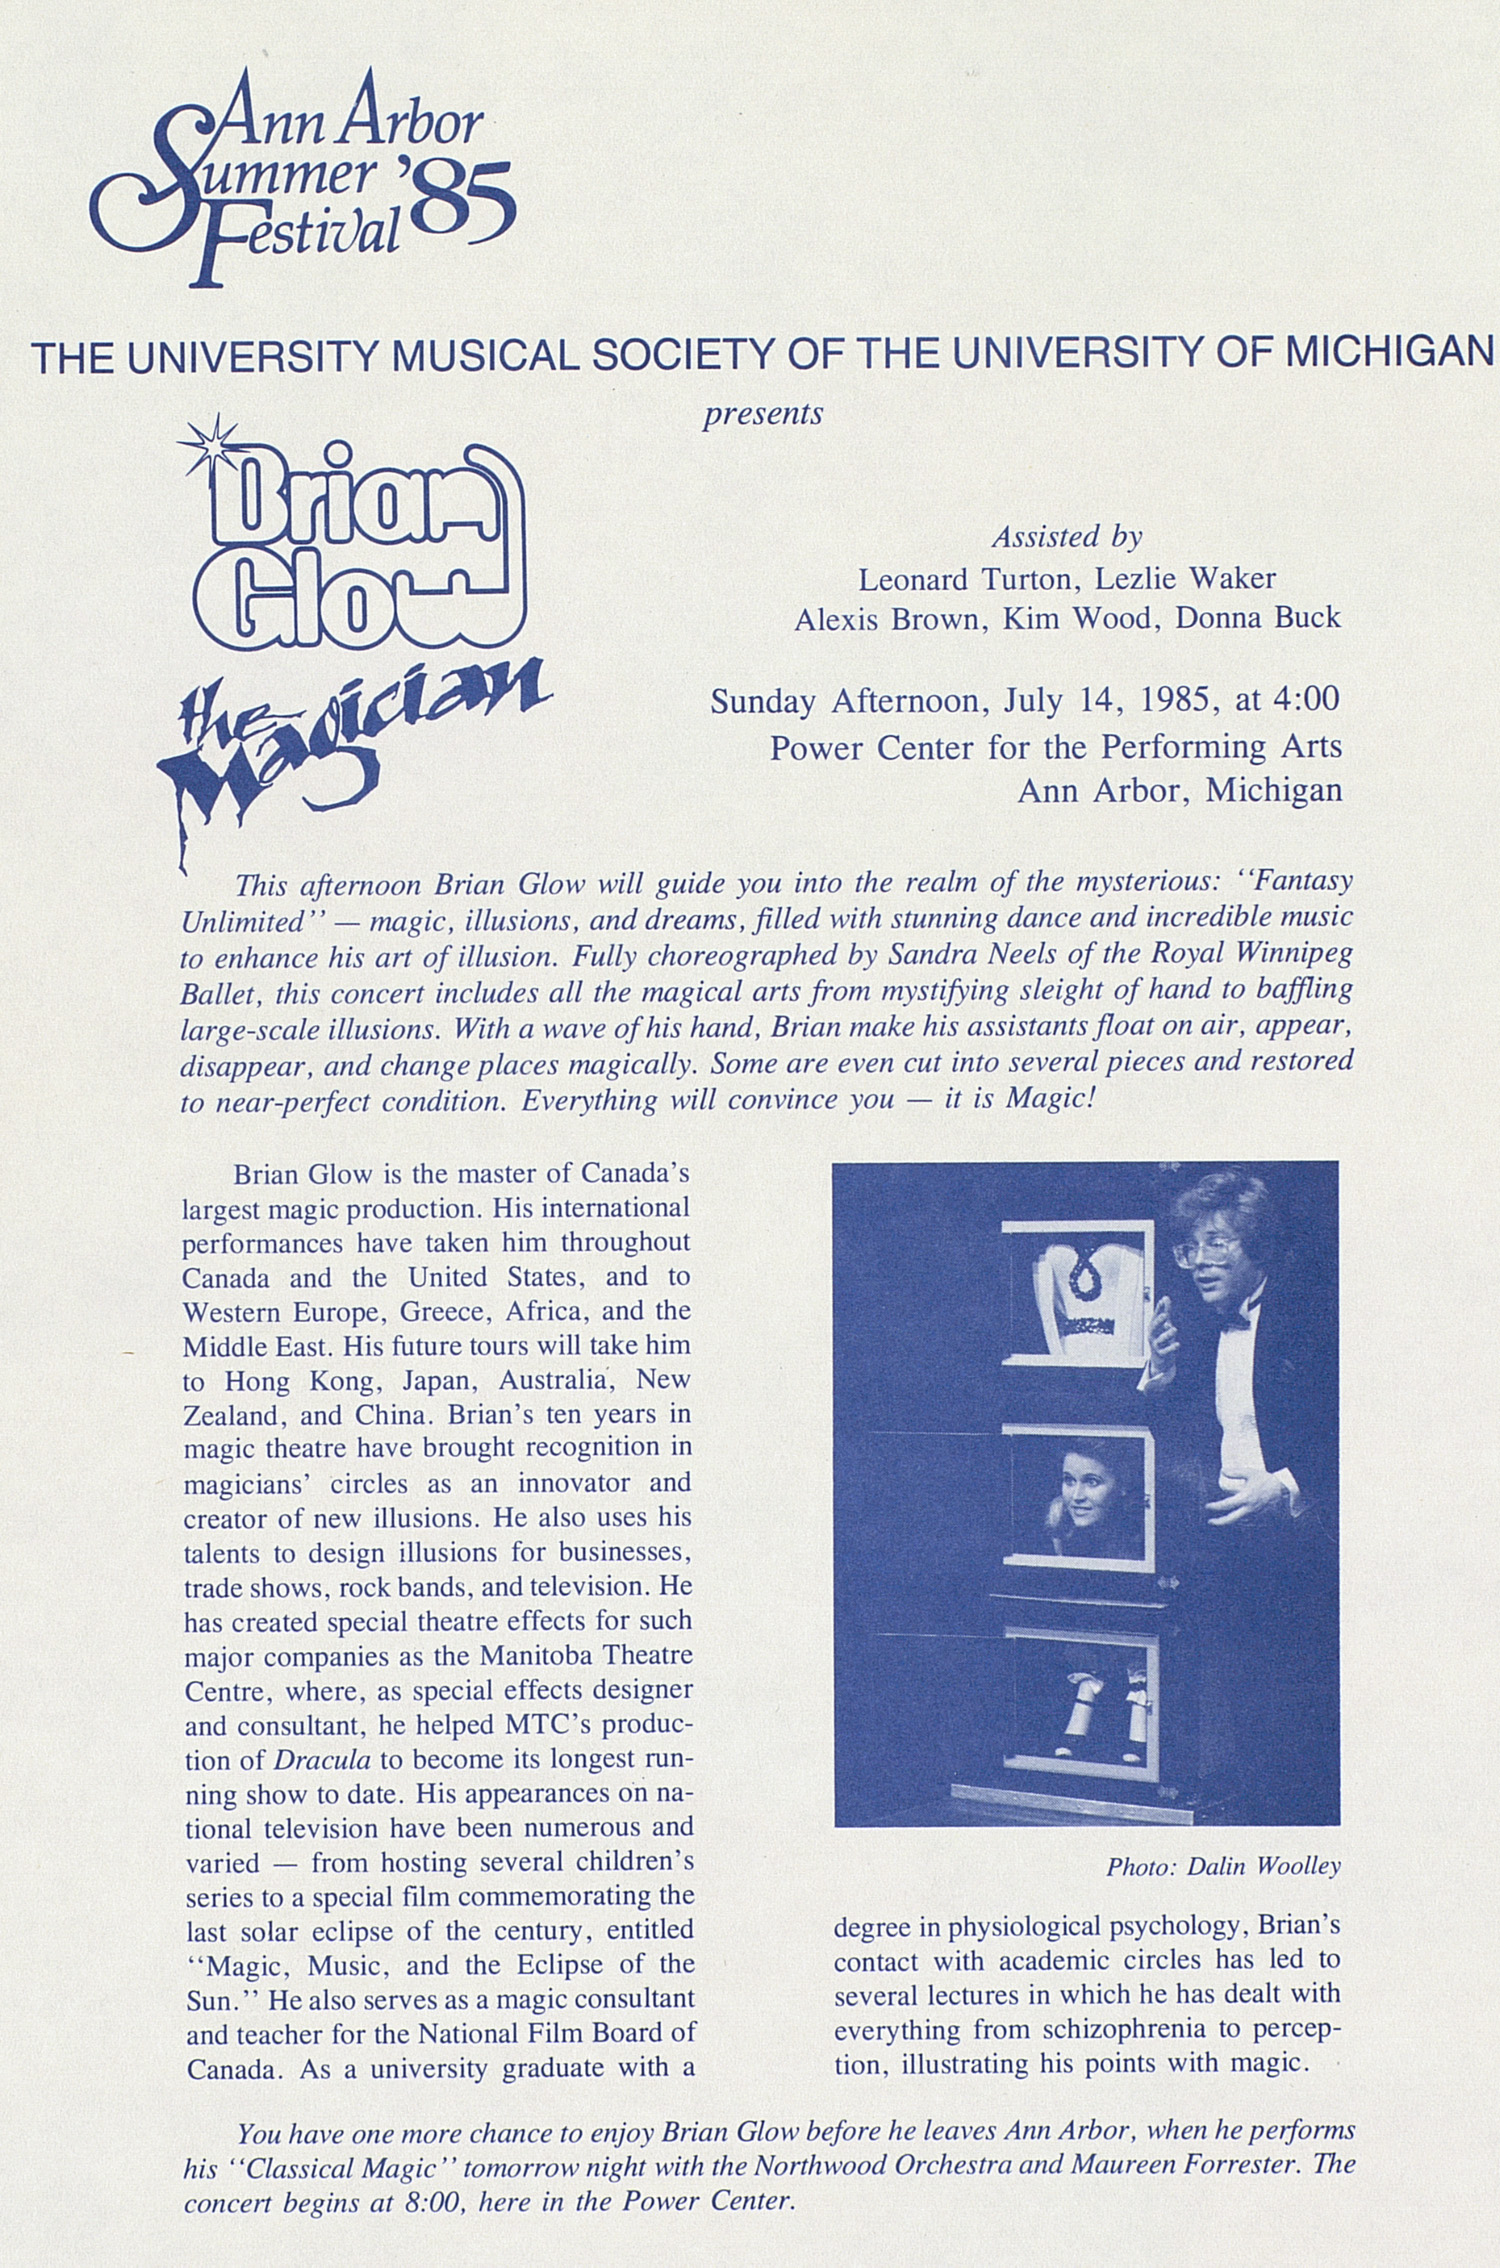 UMS Concert Program, July 14, 1985: Ann Arbor Summer '85 Festival --  image